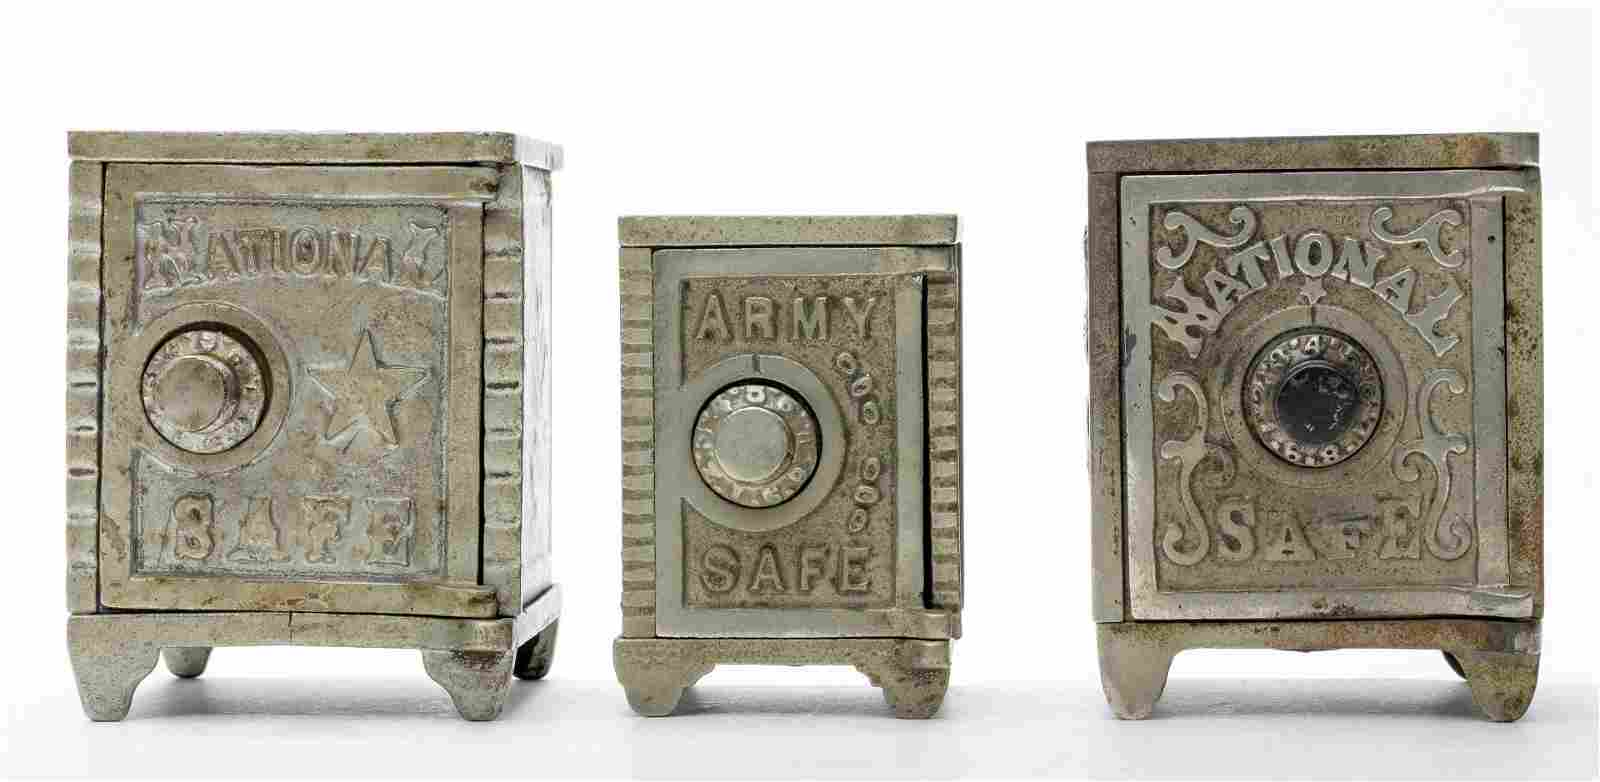 Two National Safes & Army Safe Cast Iron Bank